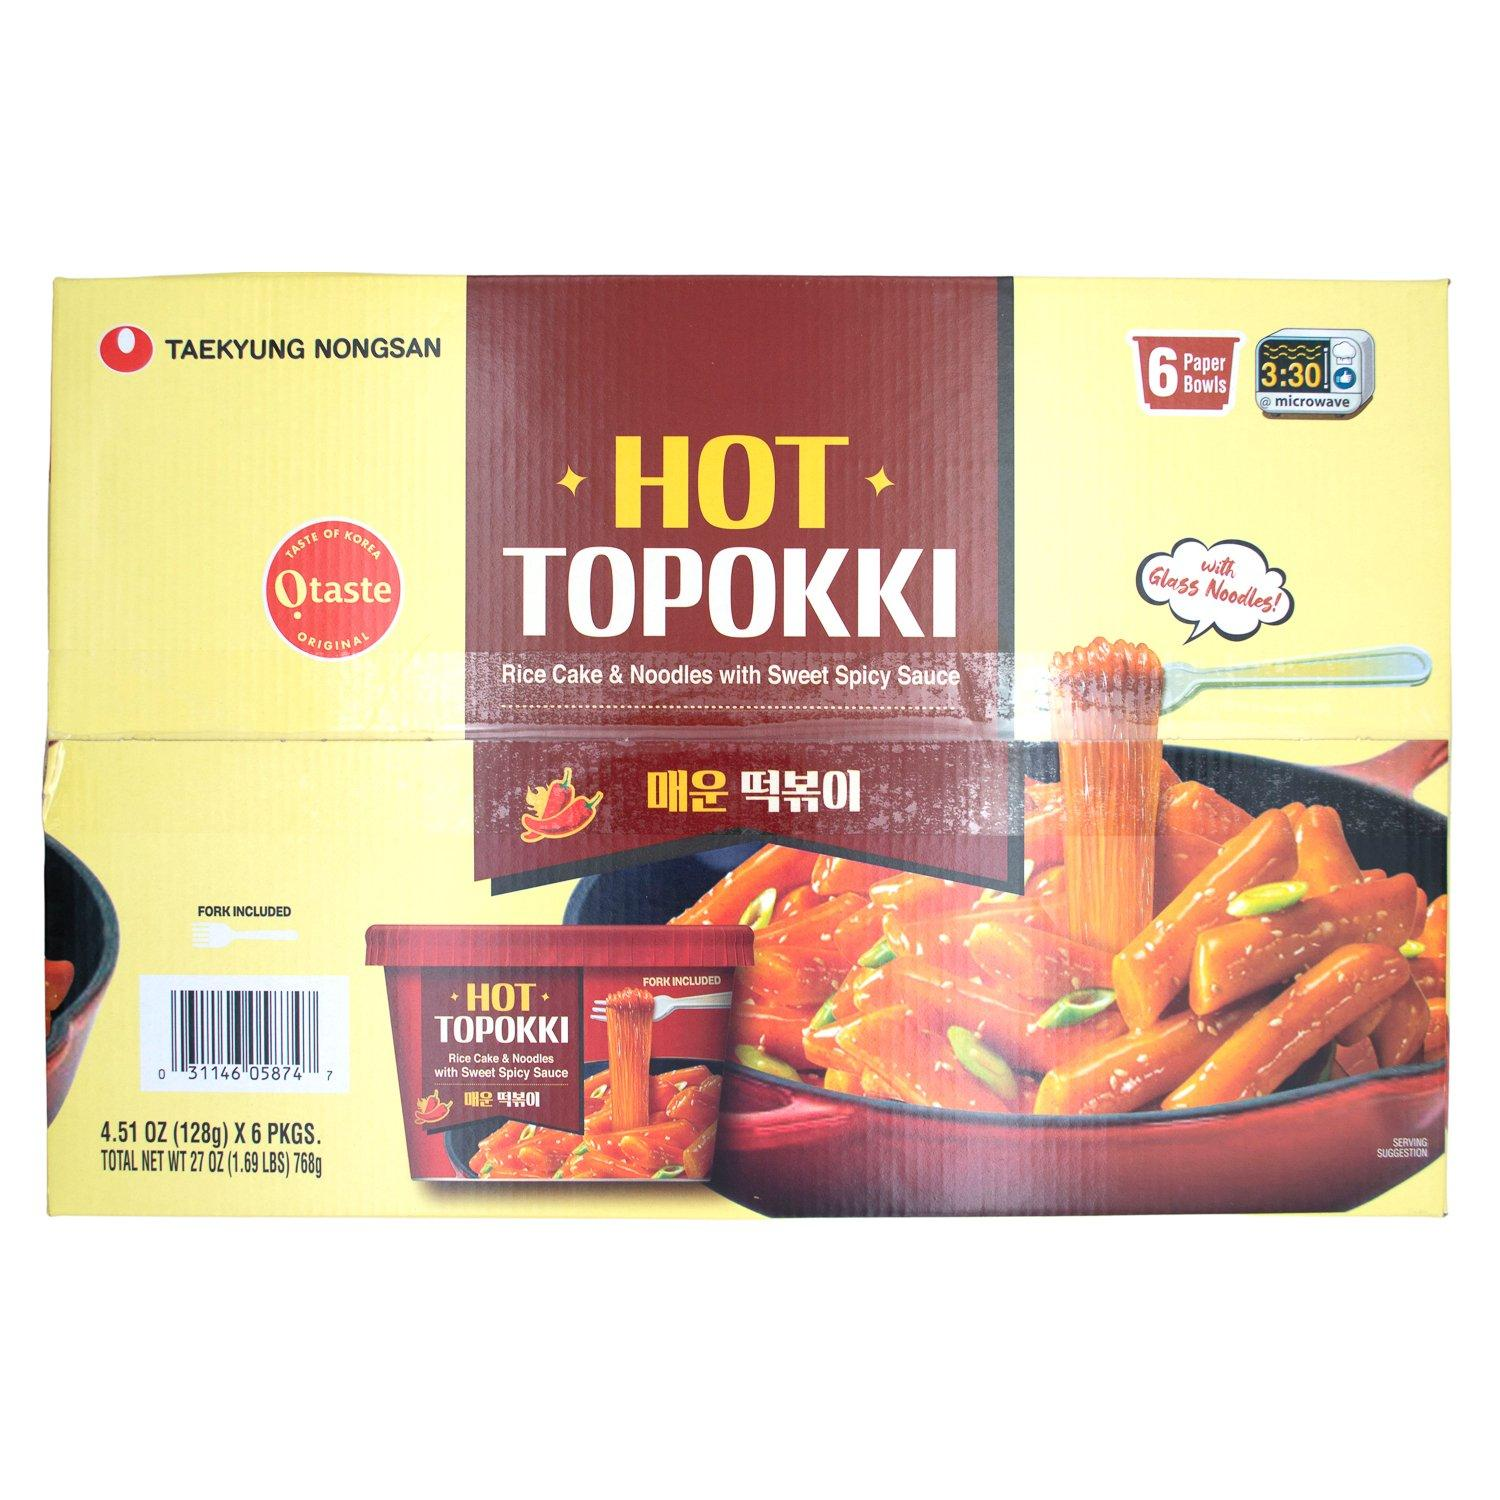 O'taste Hot Topokki Nongshim Hot 4.51 Oz-6 Count